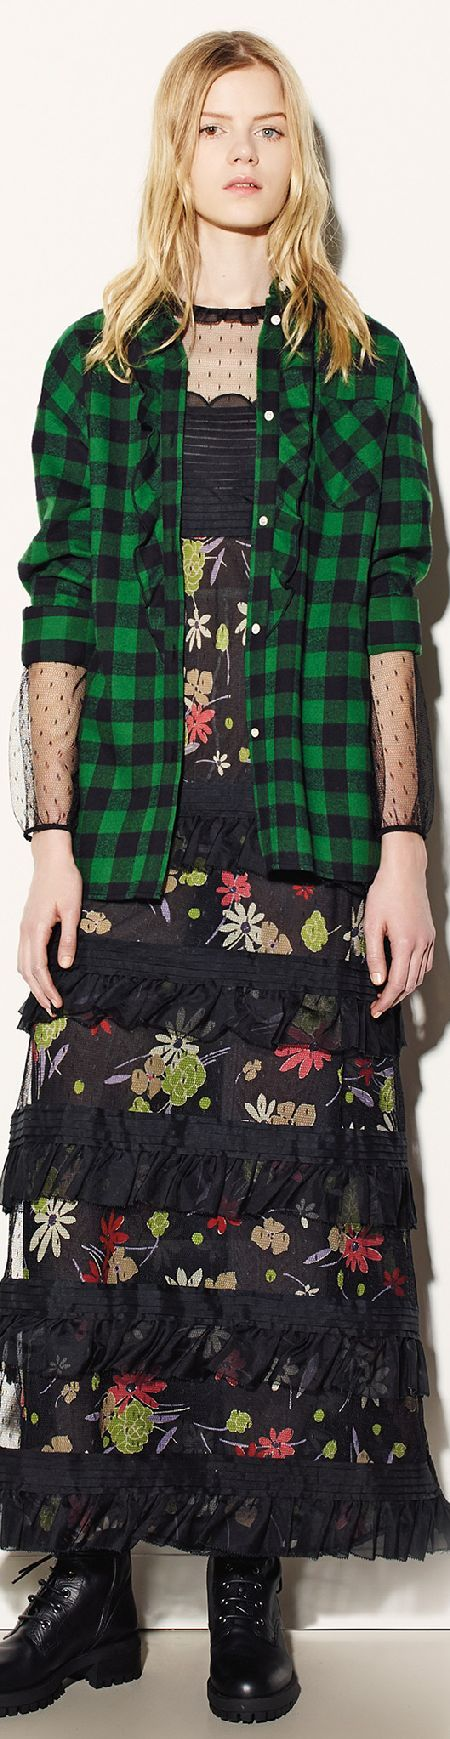 Red Valentino Fall 2015 RTW